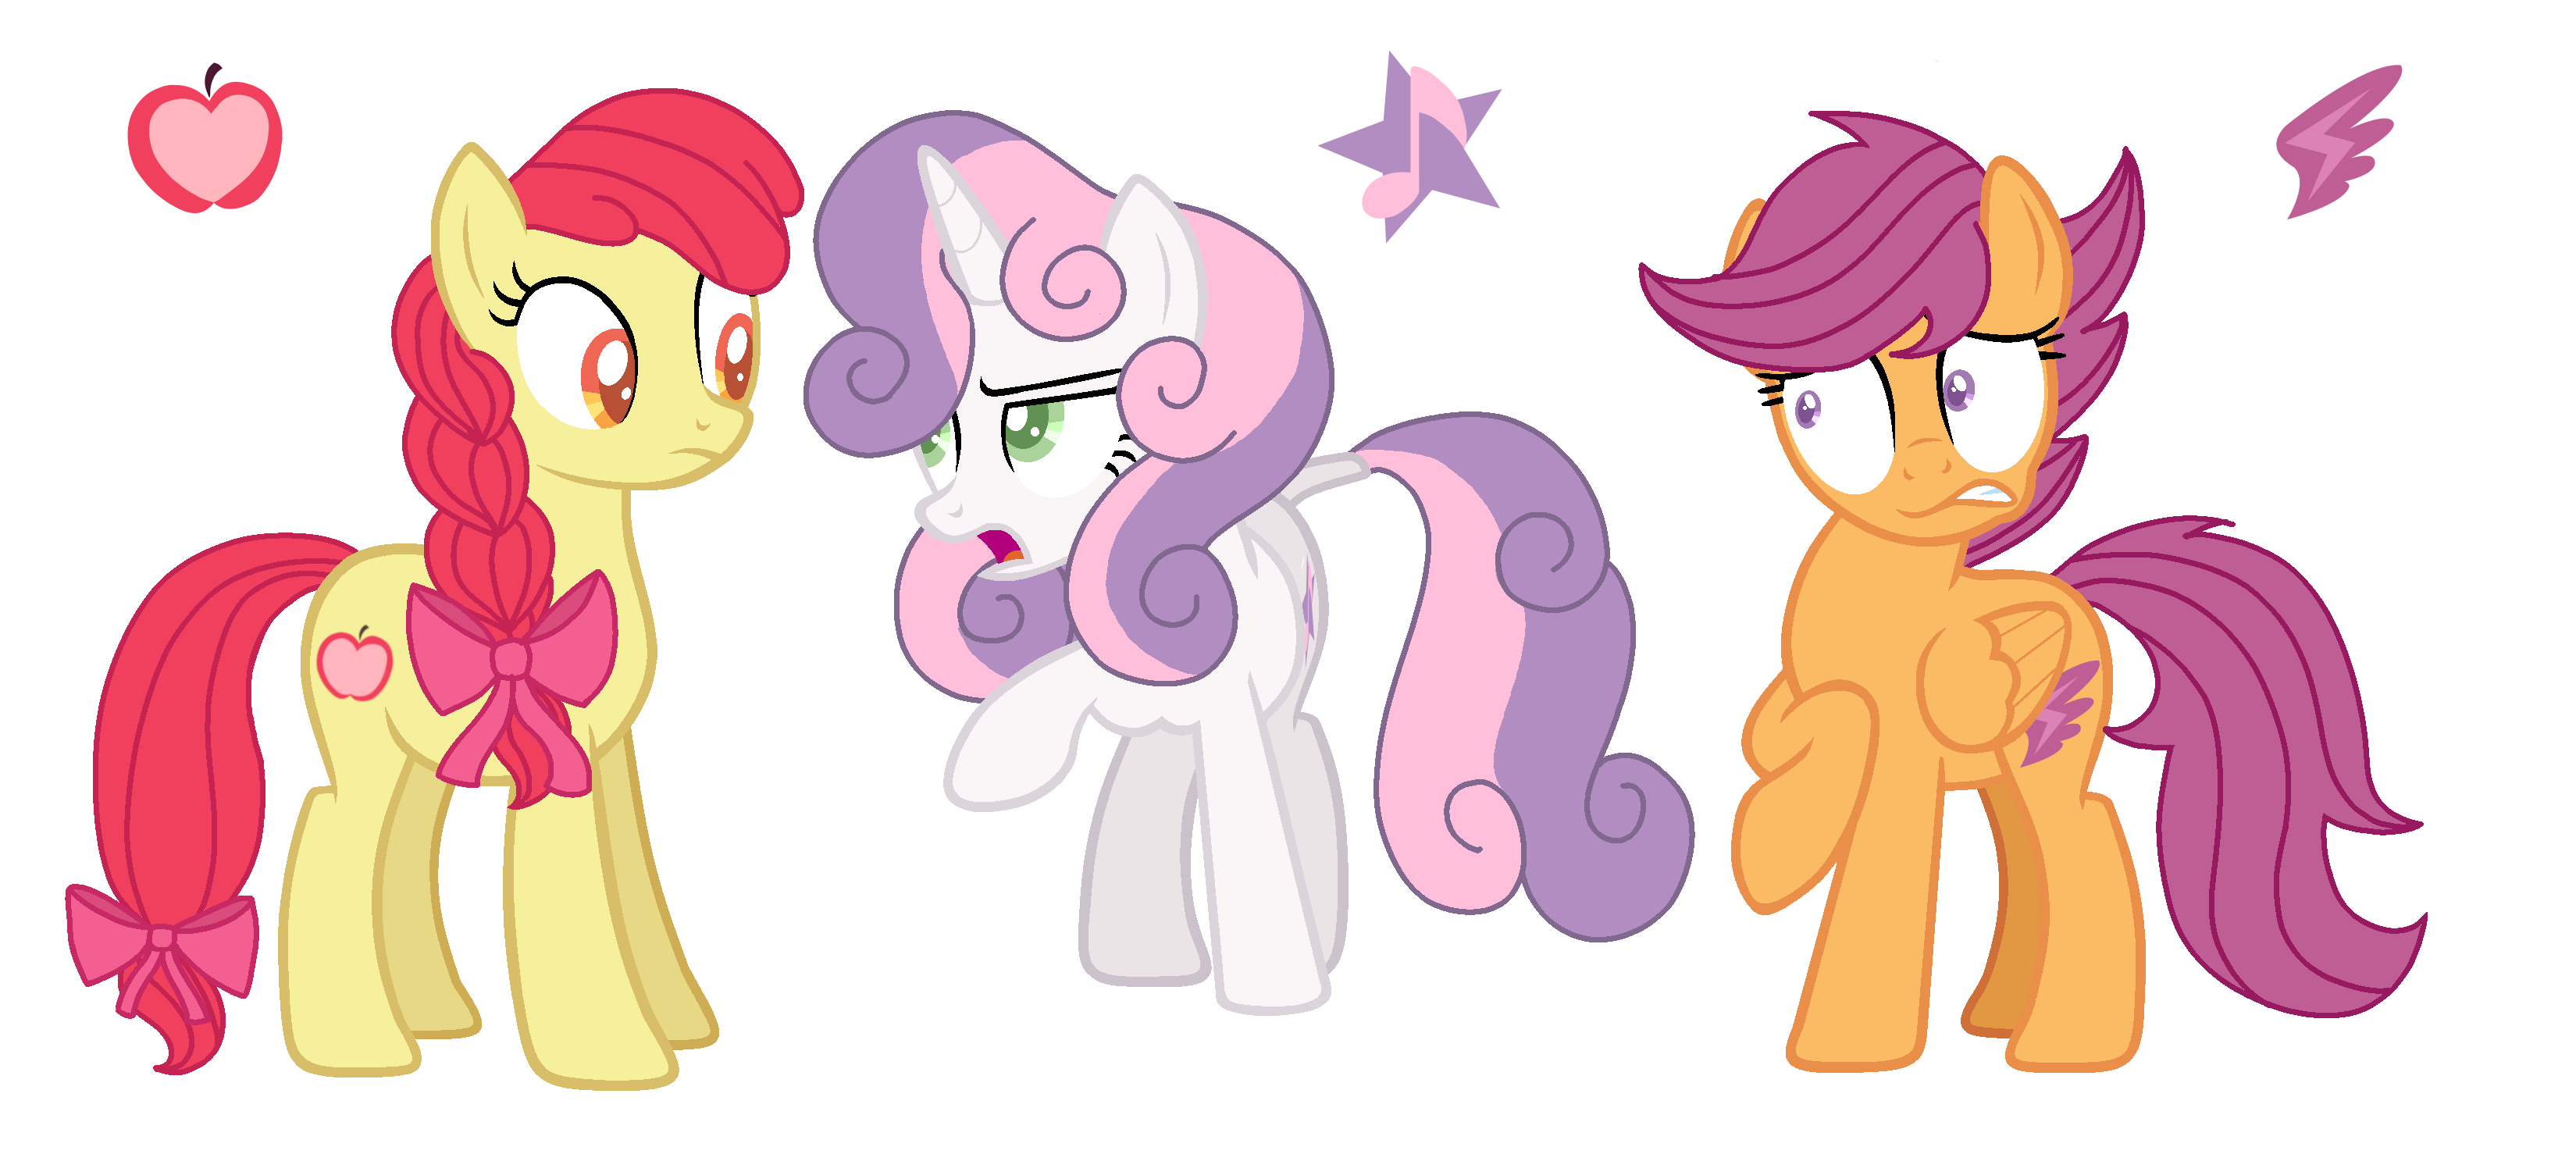 Mlp Next Gen Cmc Redesign By Musical Medic On Deviantart Ponyville minty pose, ponyville scootaloo pose, ponyville rainbow dash pose. mlp next gen cmc redesign by musical